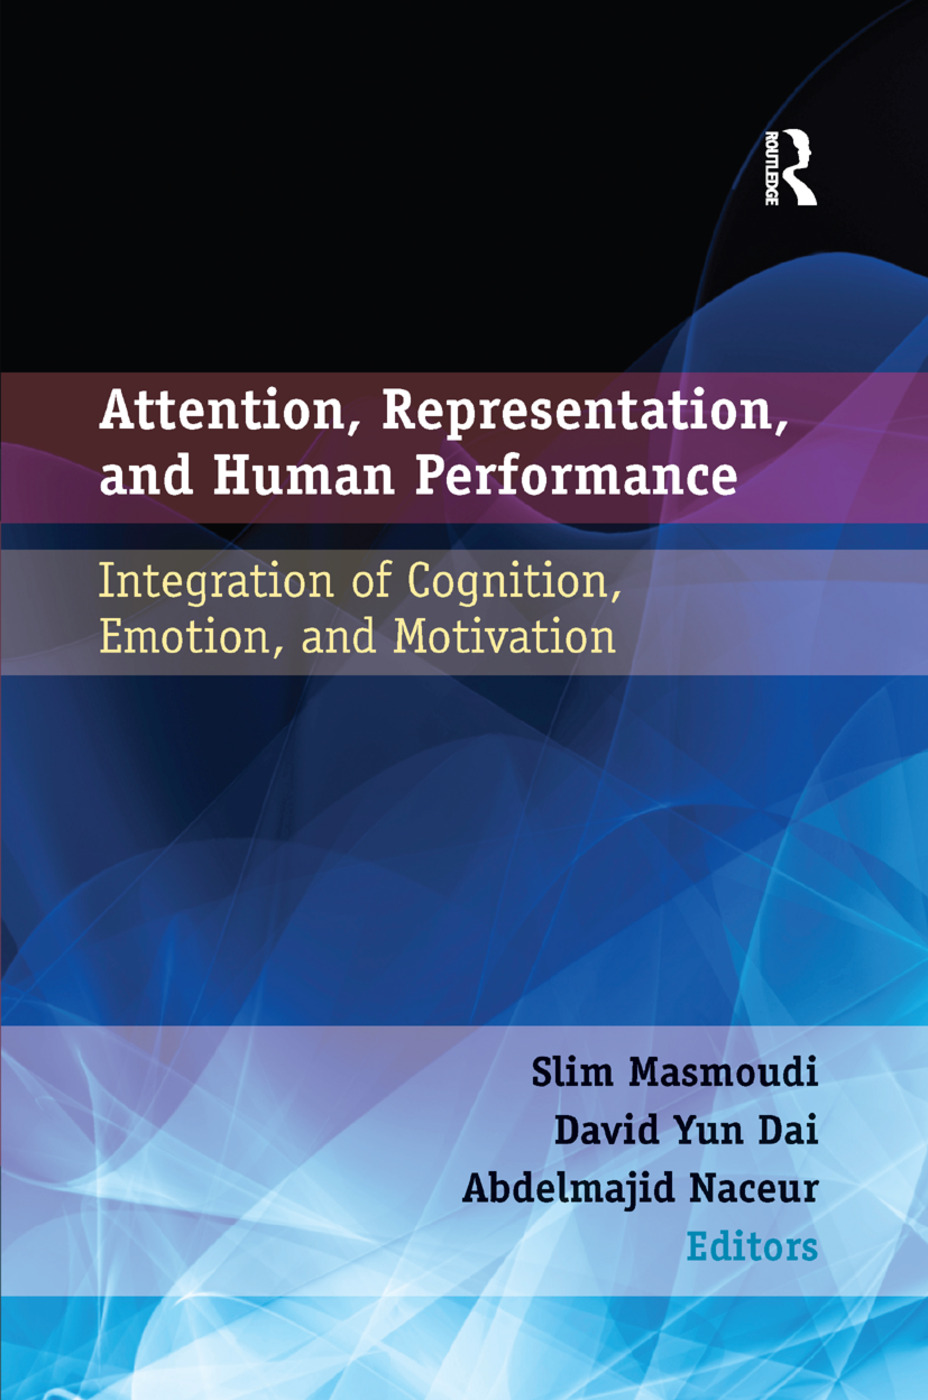 Attention, Representation, and Human Performance